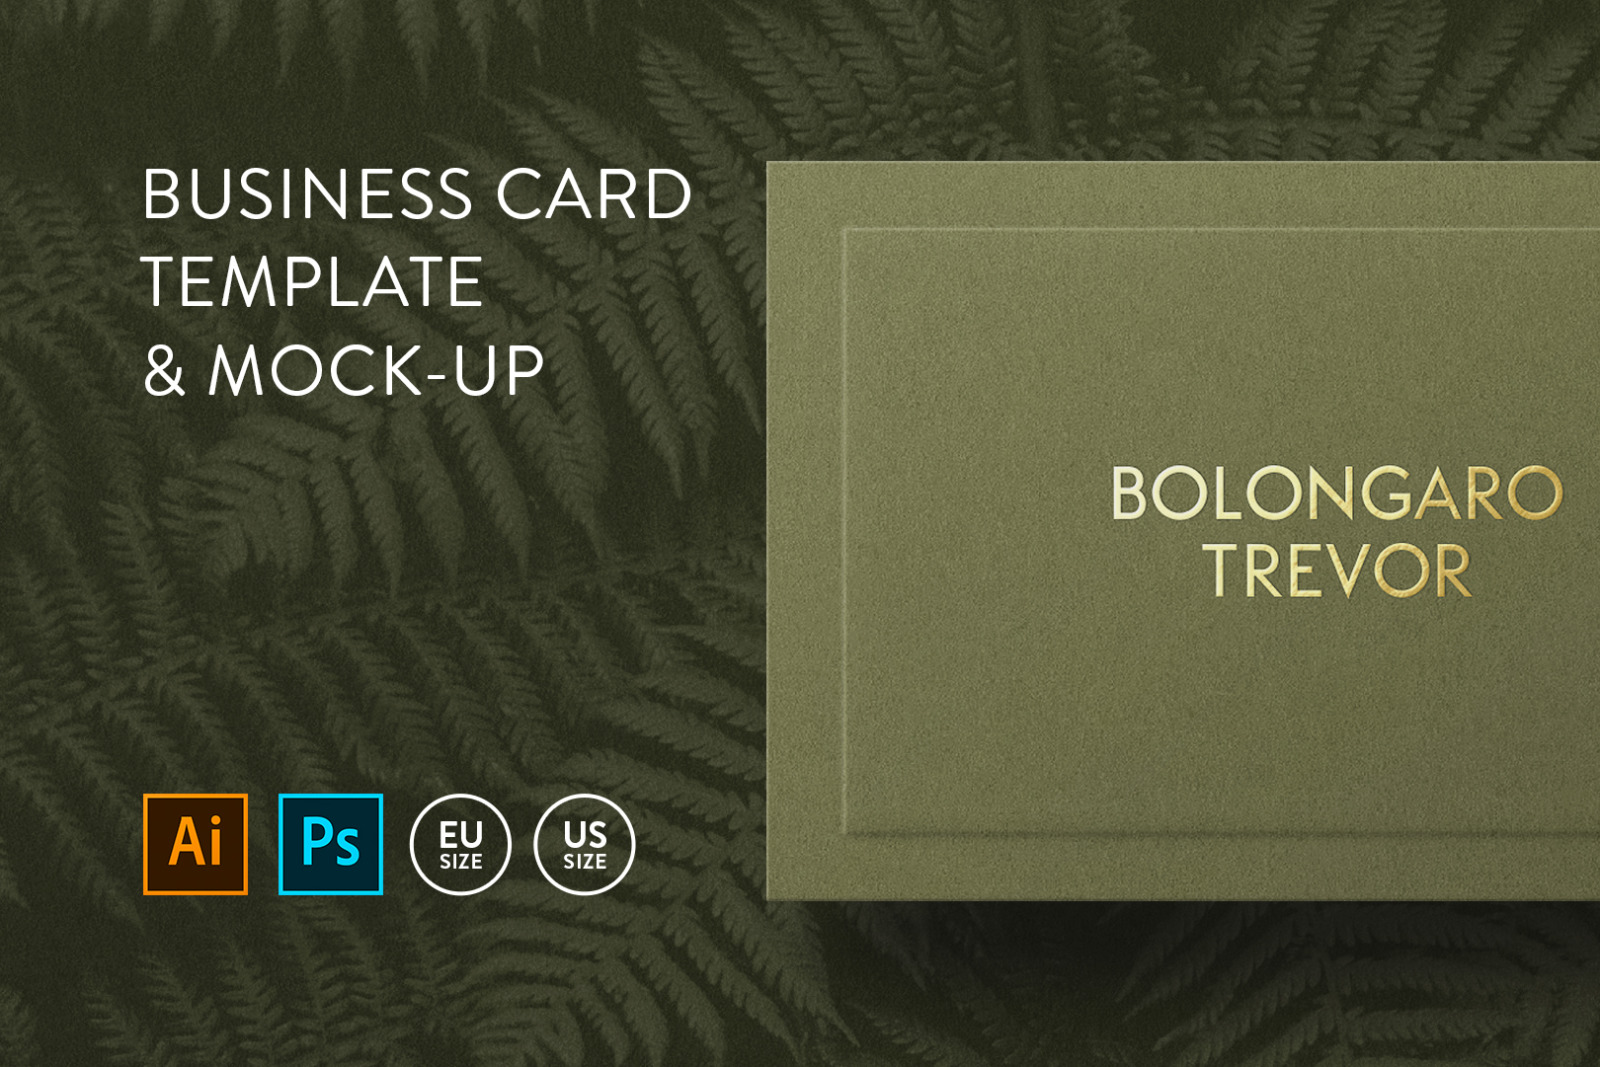 Business card Template & Mock-up #32